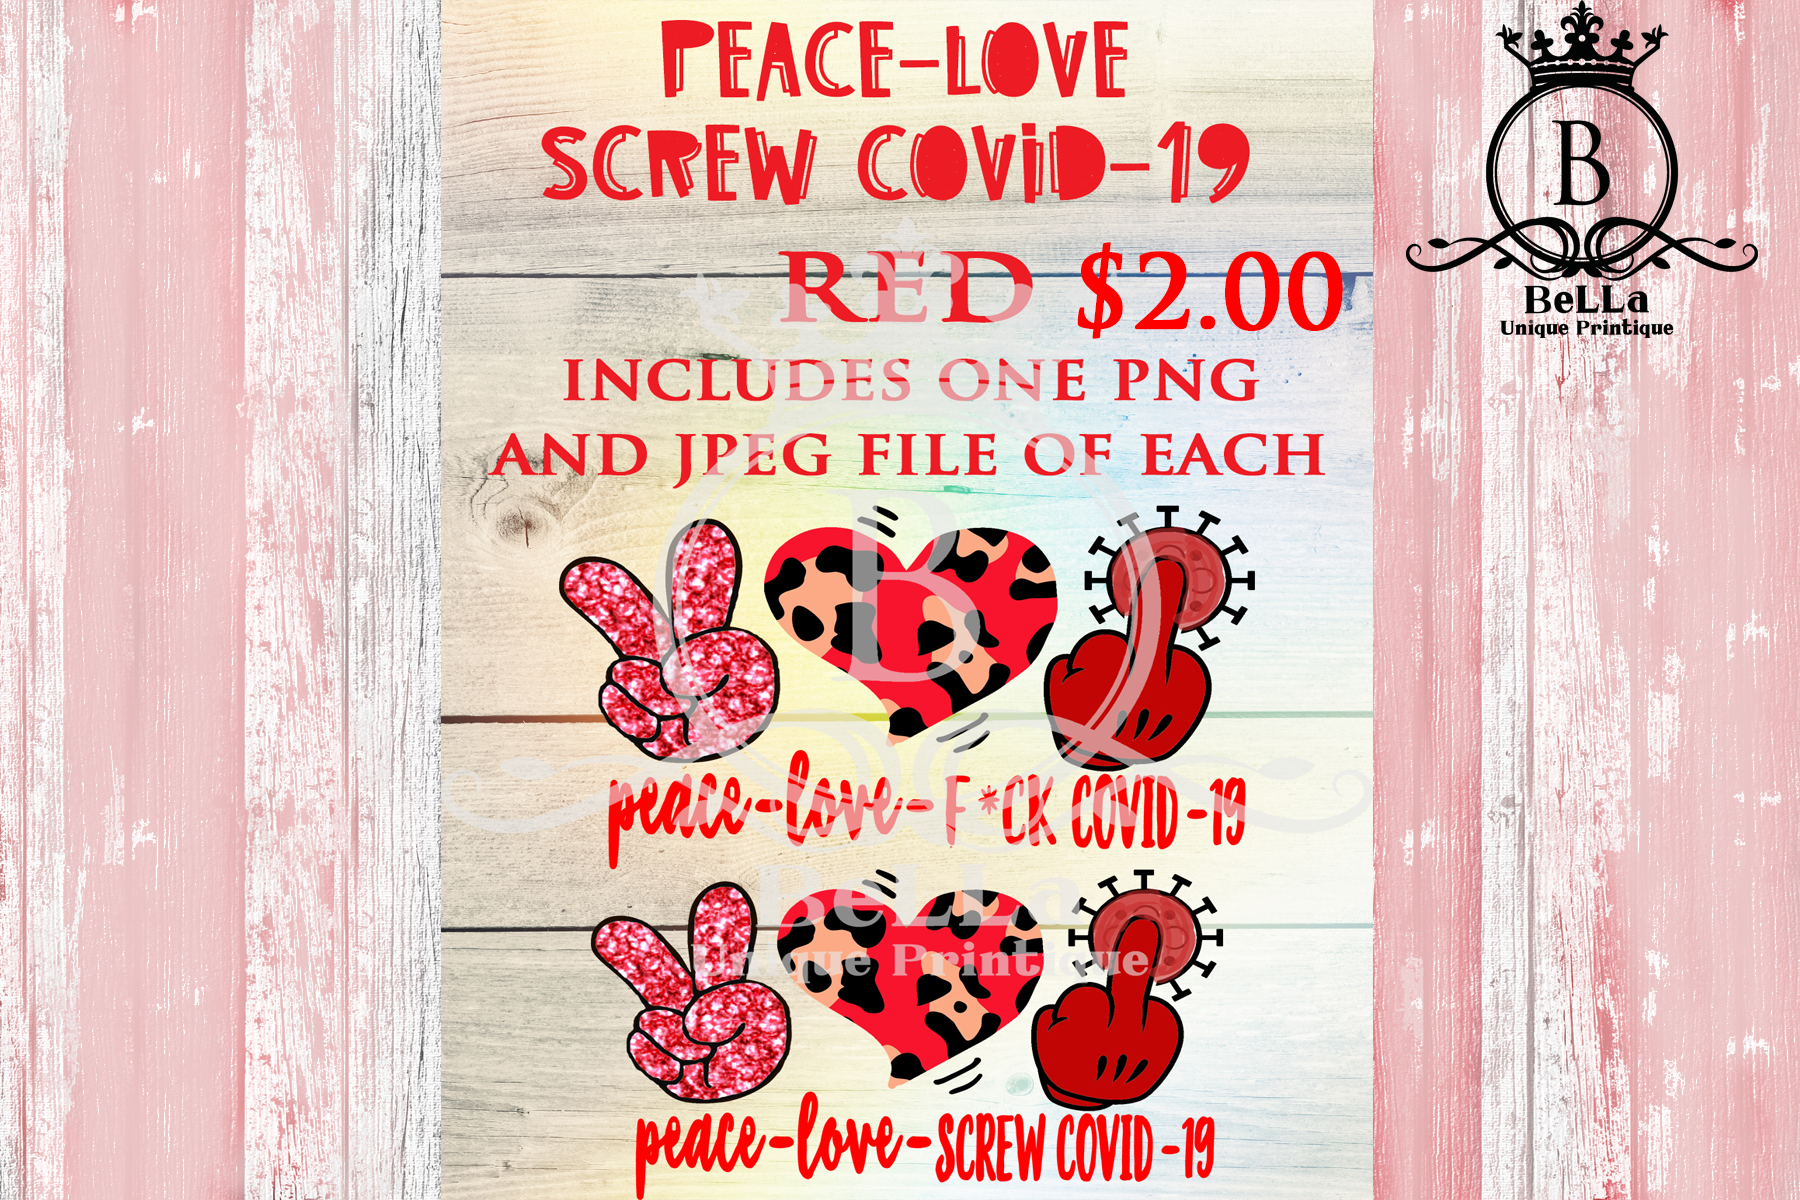 Download Free Peace Love Screw Covid 19 Red Graphic By Bellauniqueprintique Creative Fabrica for Cricut Explore, Silhouette and other cutting machines.